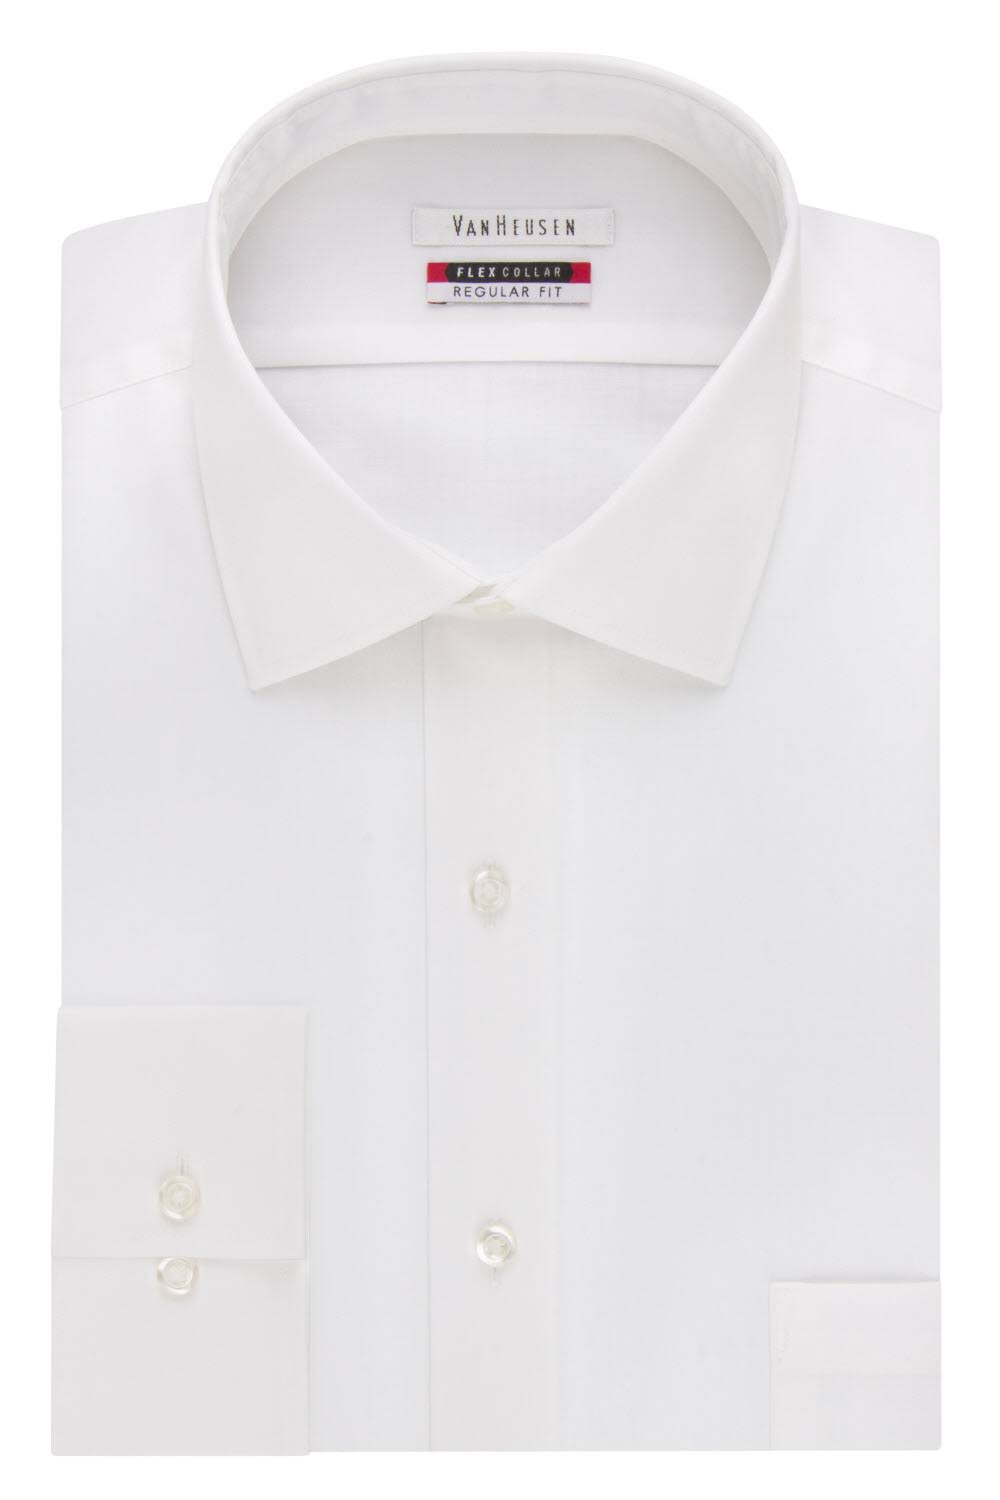 Van Heusen Men's Regular Fit Flex Collar Dress Shirt - White - 16.5 32/33